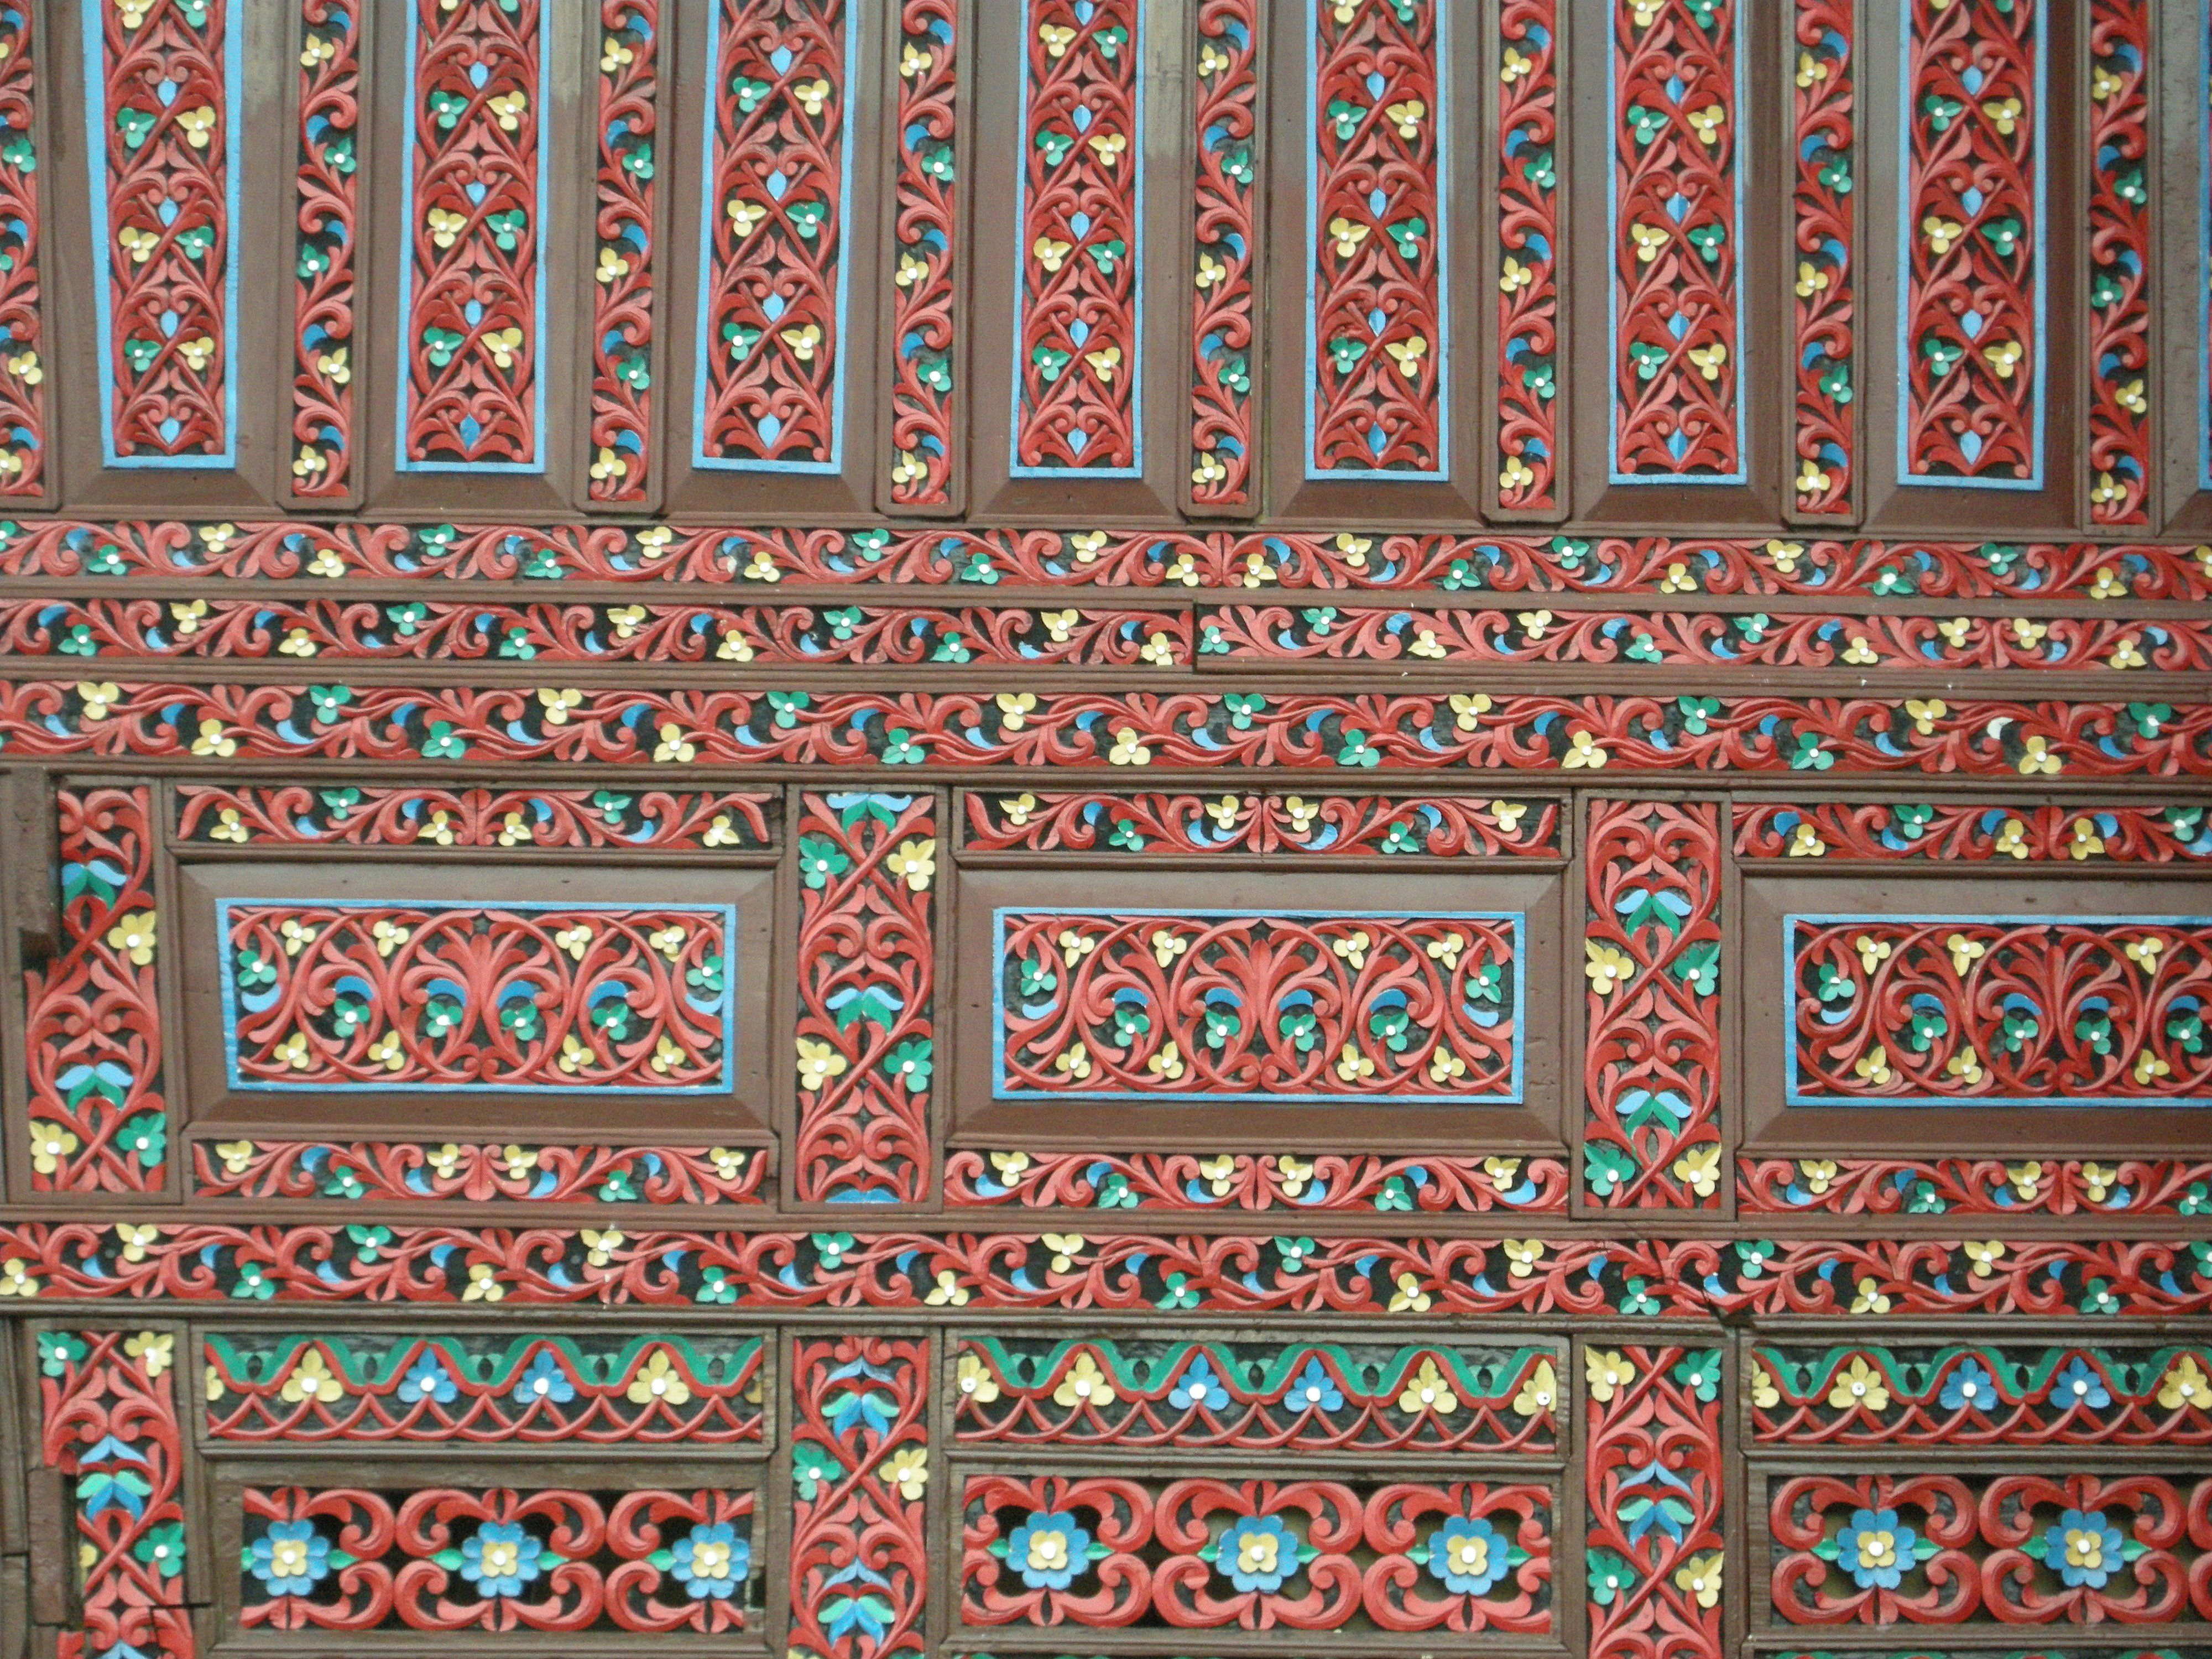 Textile Batak North Sumatra Indonesia Ethnic Textile & Costumes